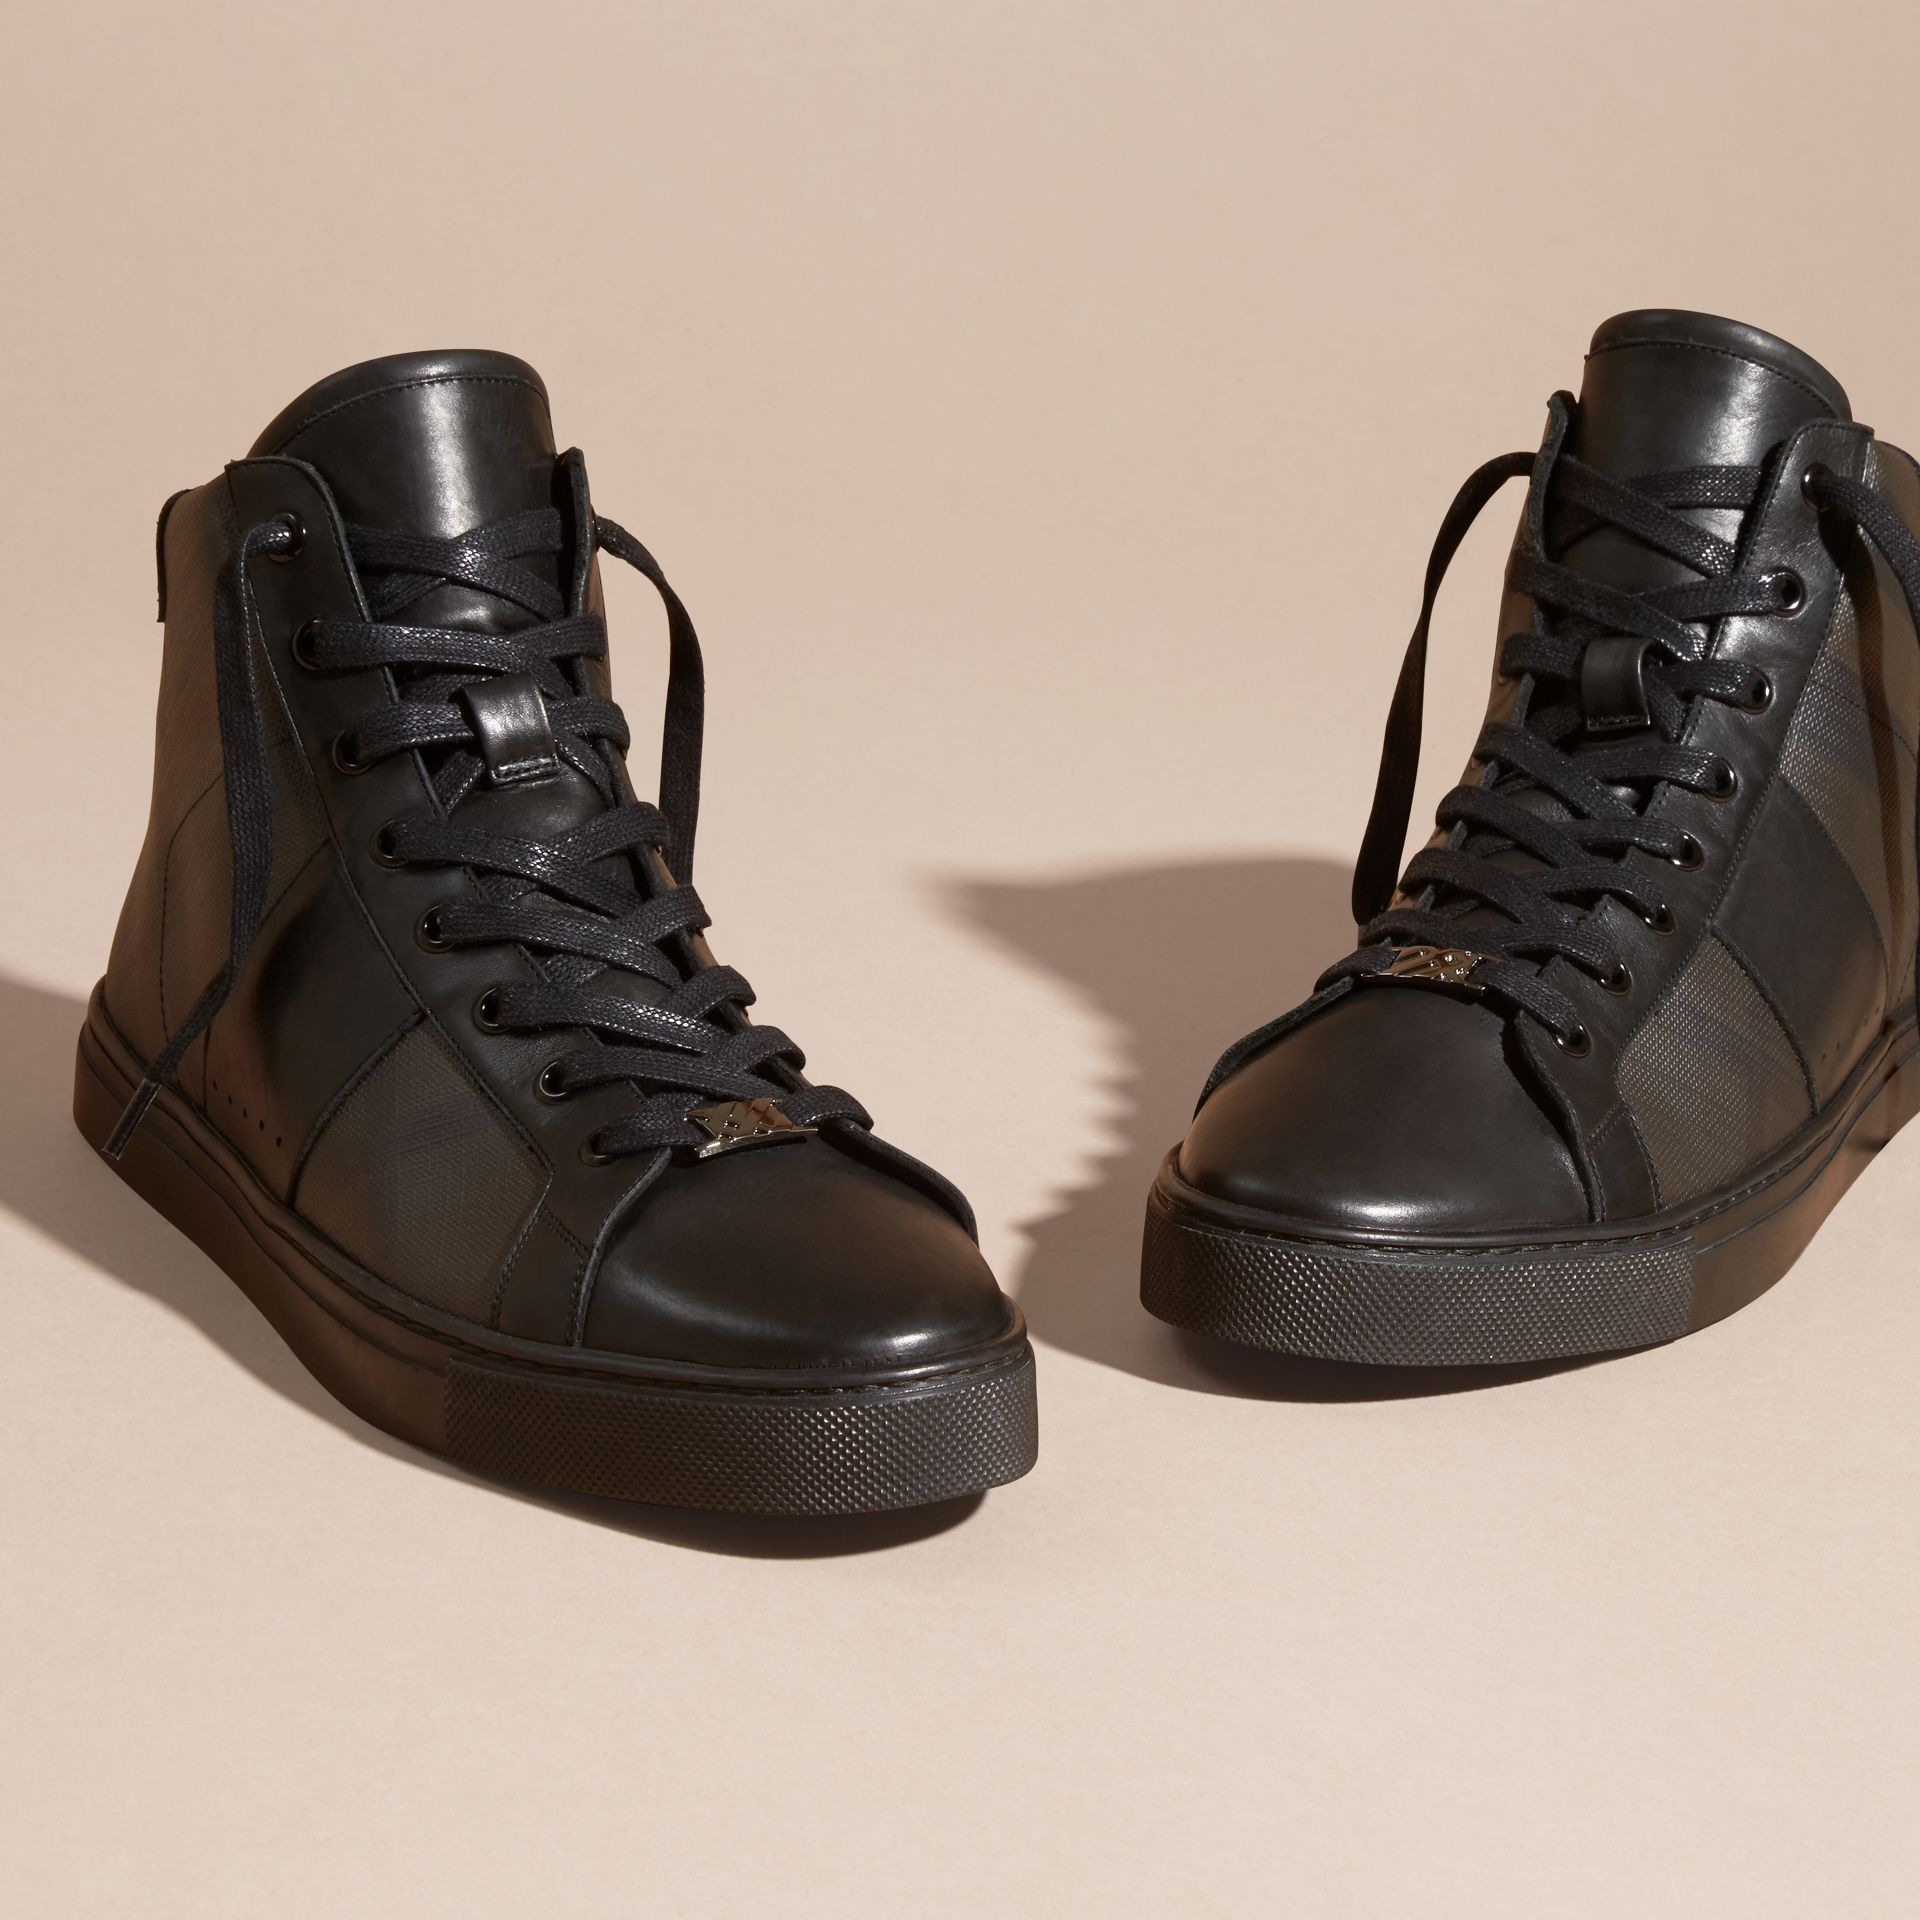 London Check and Leather High-Top Trainers in Smoked Chocolate - Men | Burberry Canada - gallery image 3